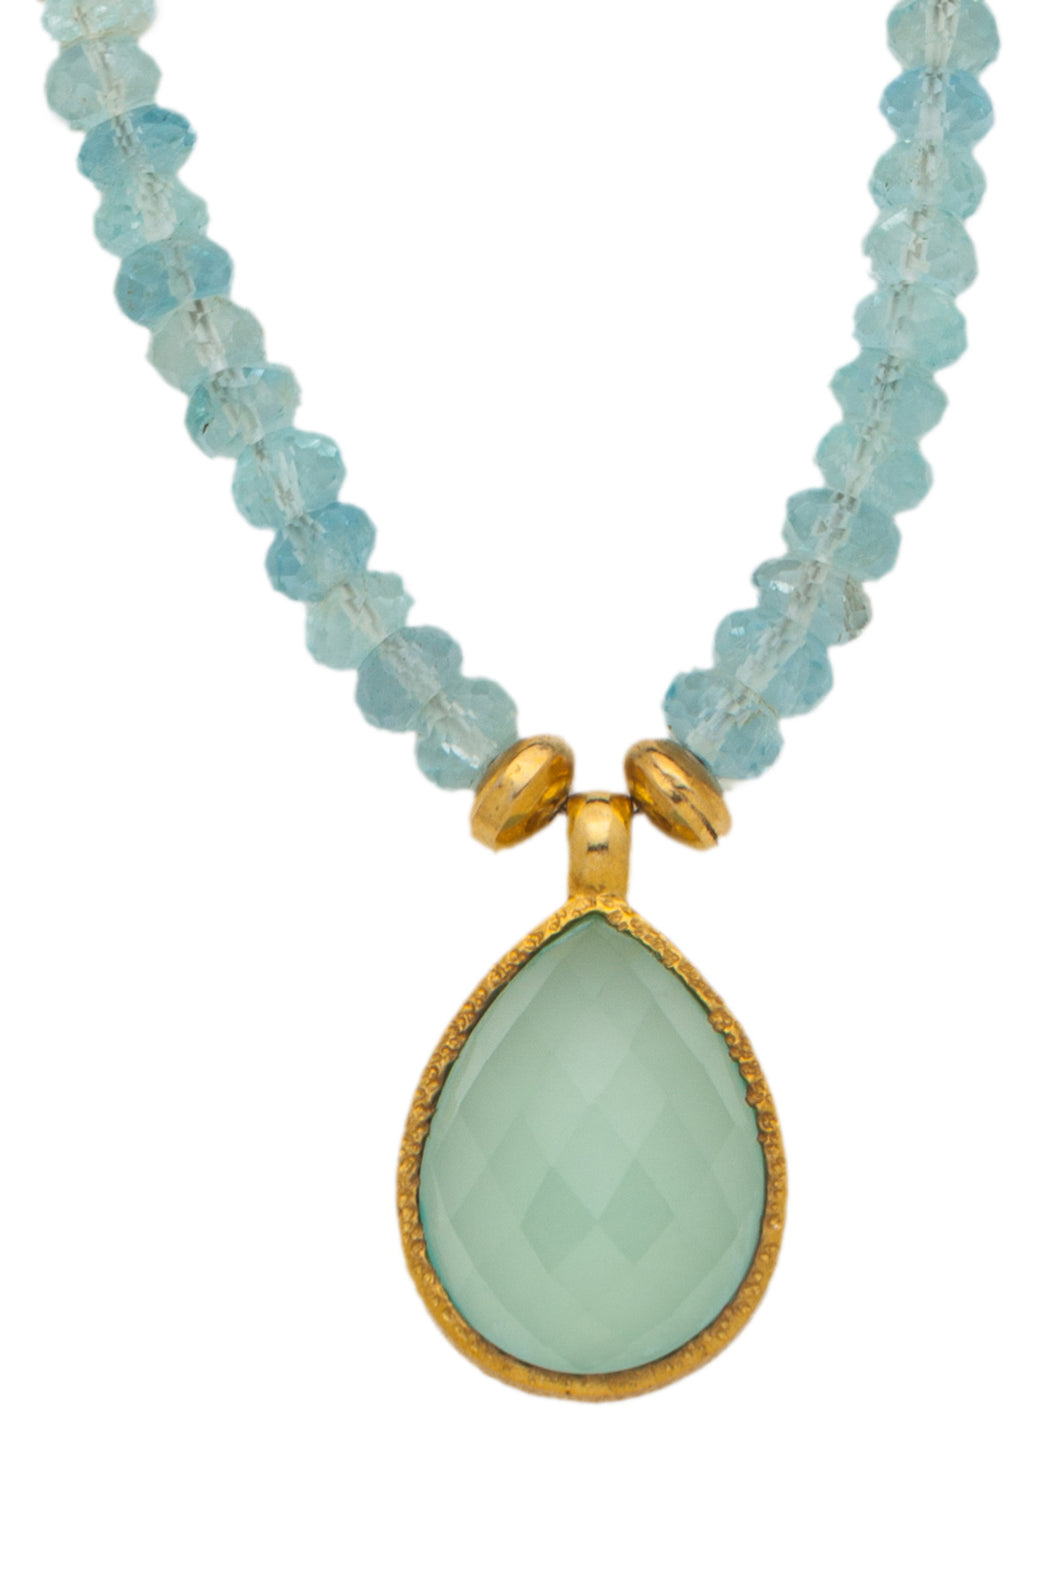 Aqua Marine faceted gemstone necklace with Chalcedony pendant in 24kt gold vermeil NF002-AM